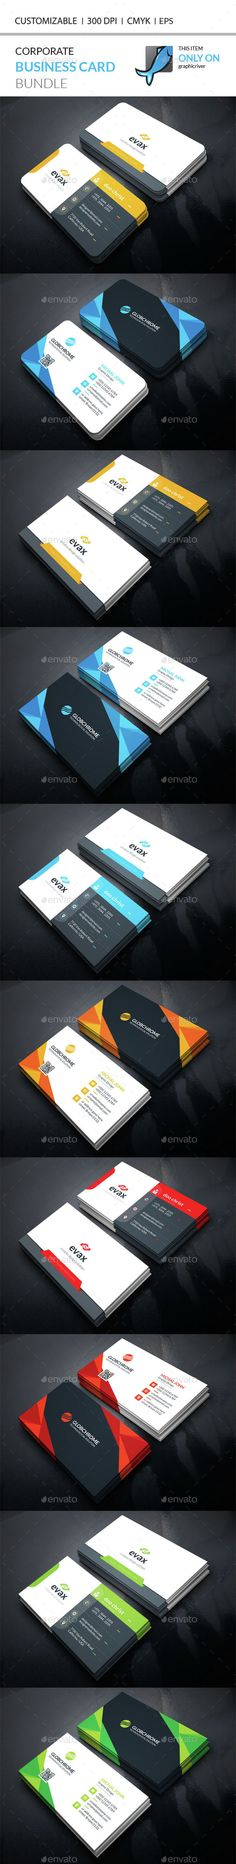 Corporate Business Card Bundle — Vector EPS #id kit #building • Available here → https://graphicriver.net/item/corporate-business-card-bundle/14824594?ref=pxcr